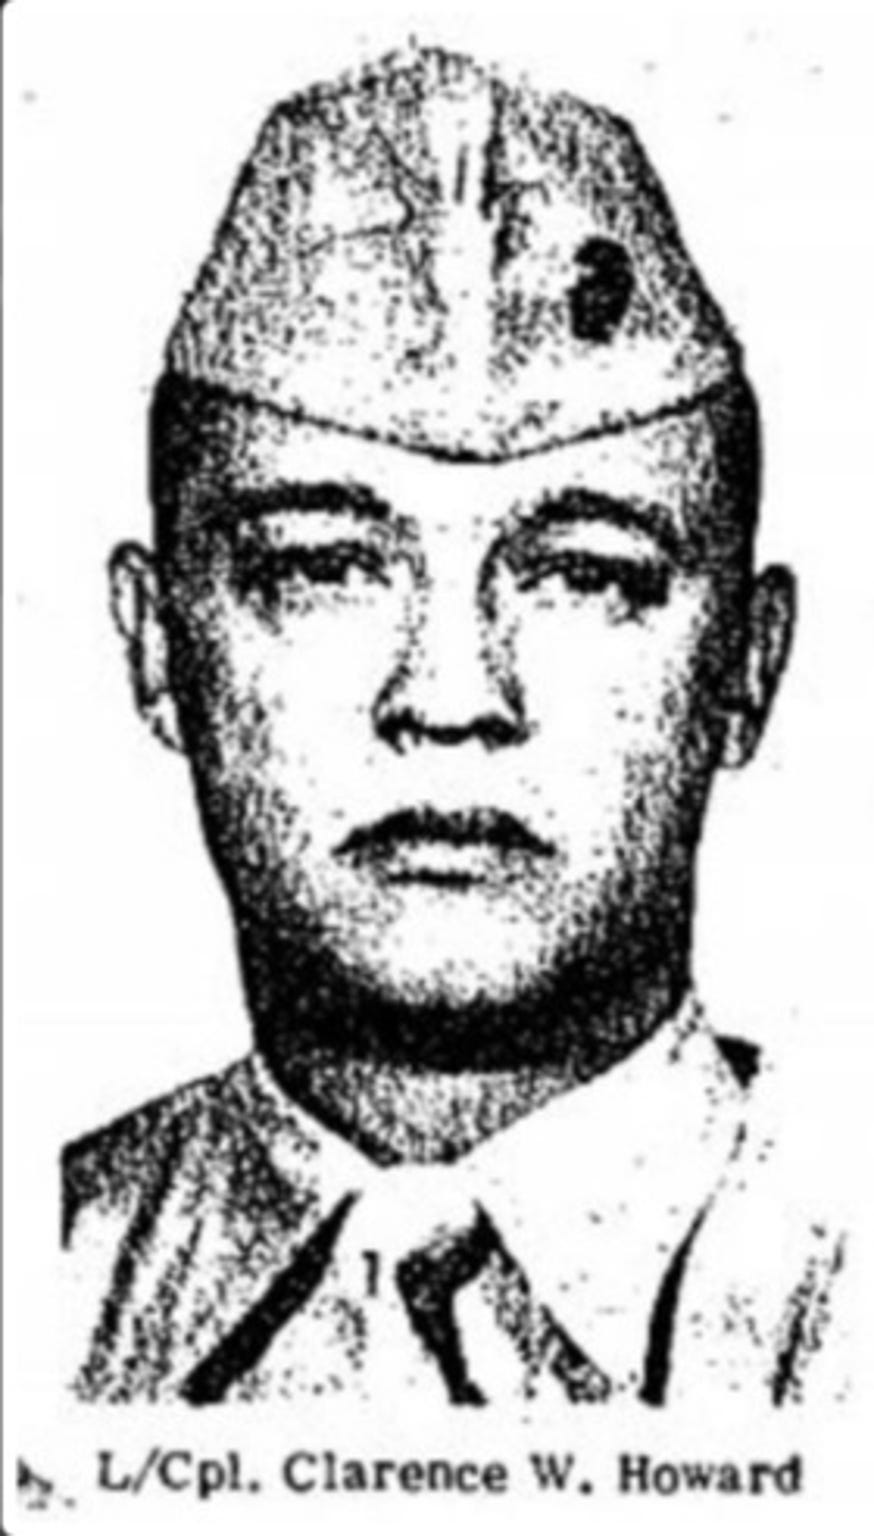 Lance Cpl. Clarence W. Howard died in 1966 while serving in Vietnam. He went to school in Port Huron.